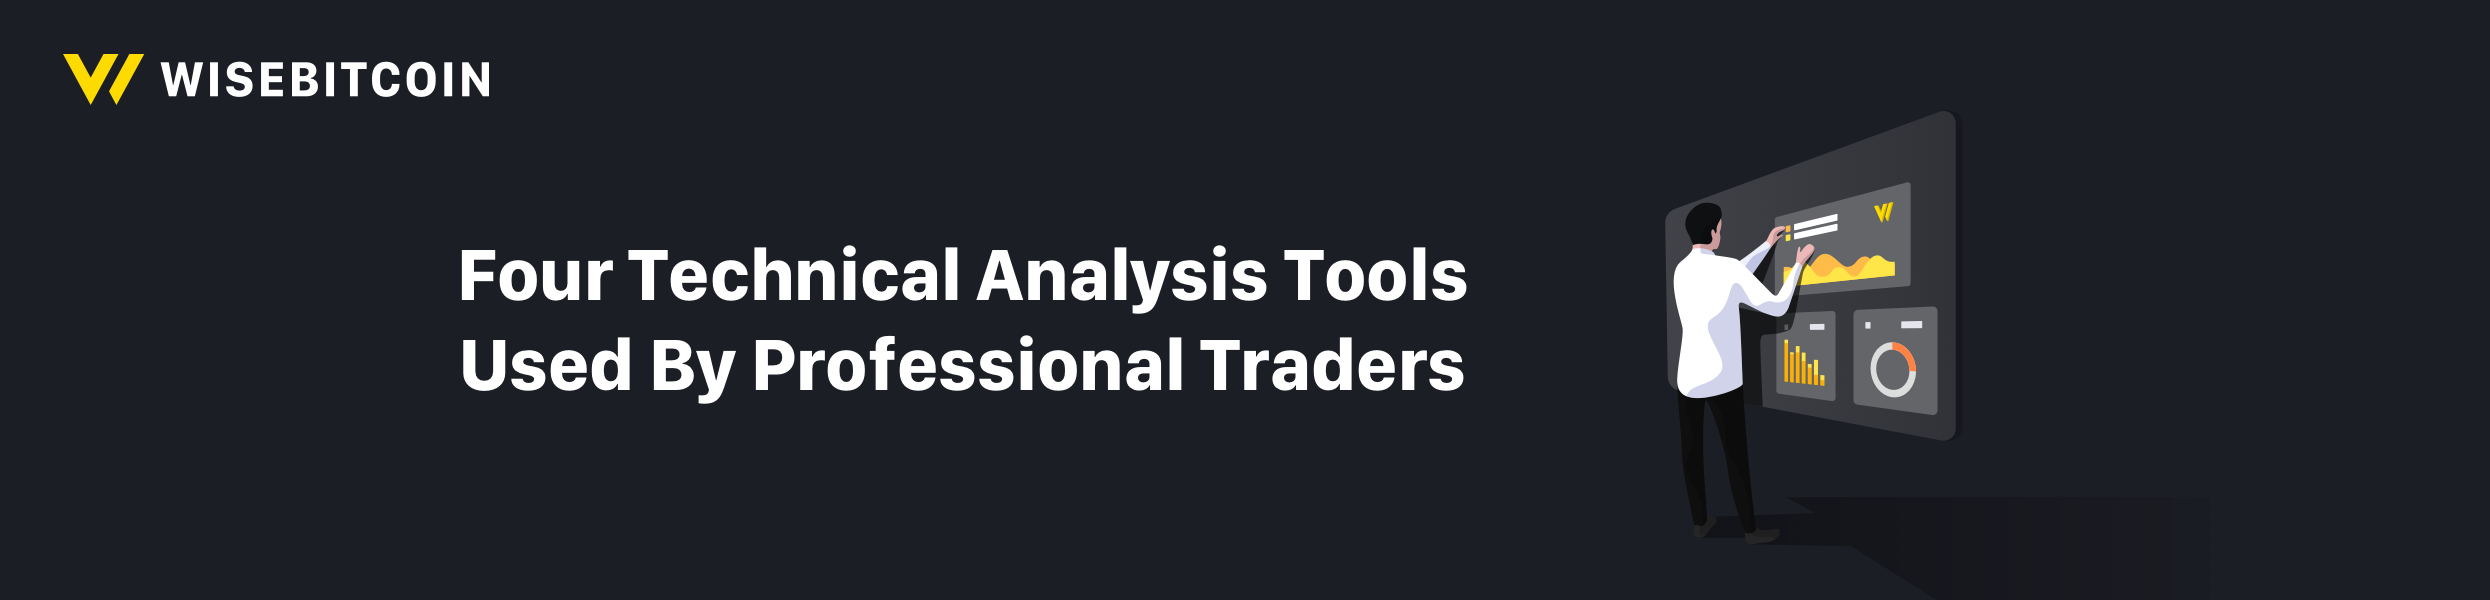 analysis tools for professional traders banner